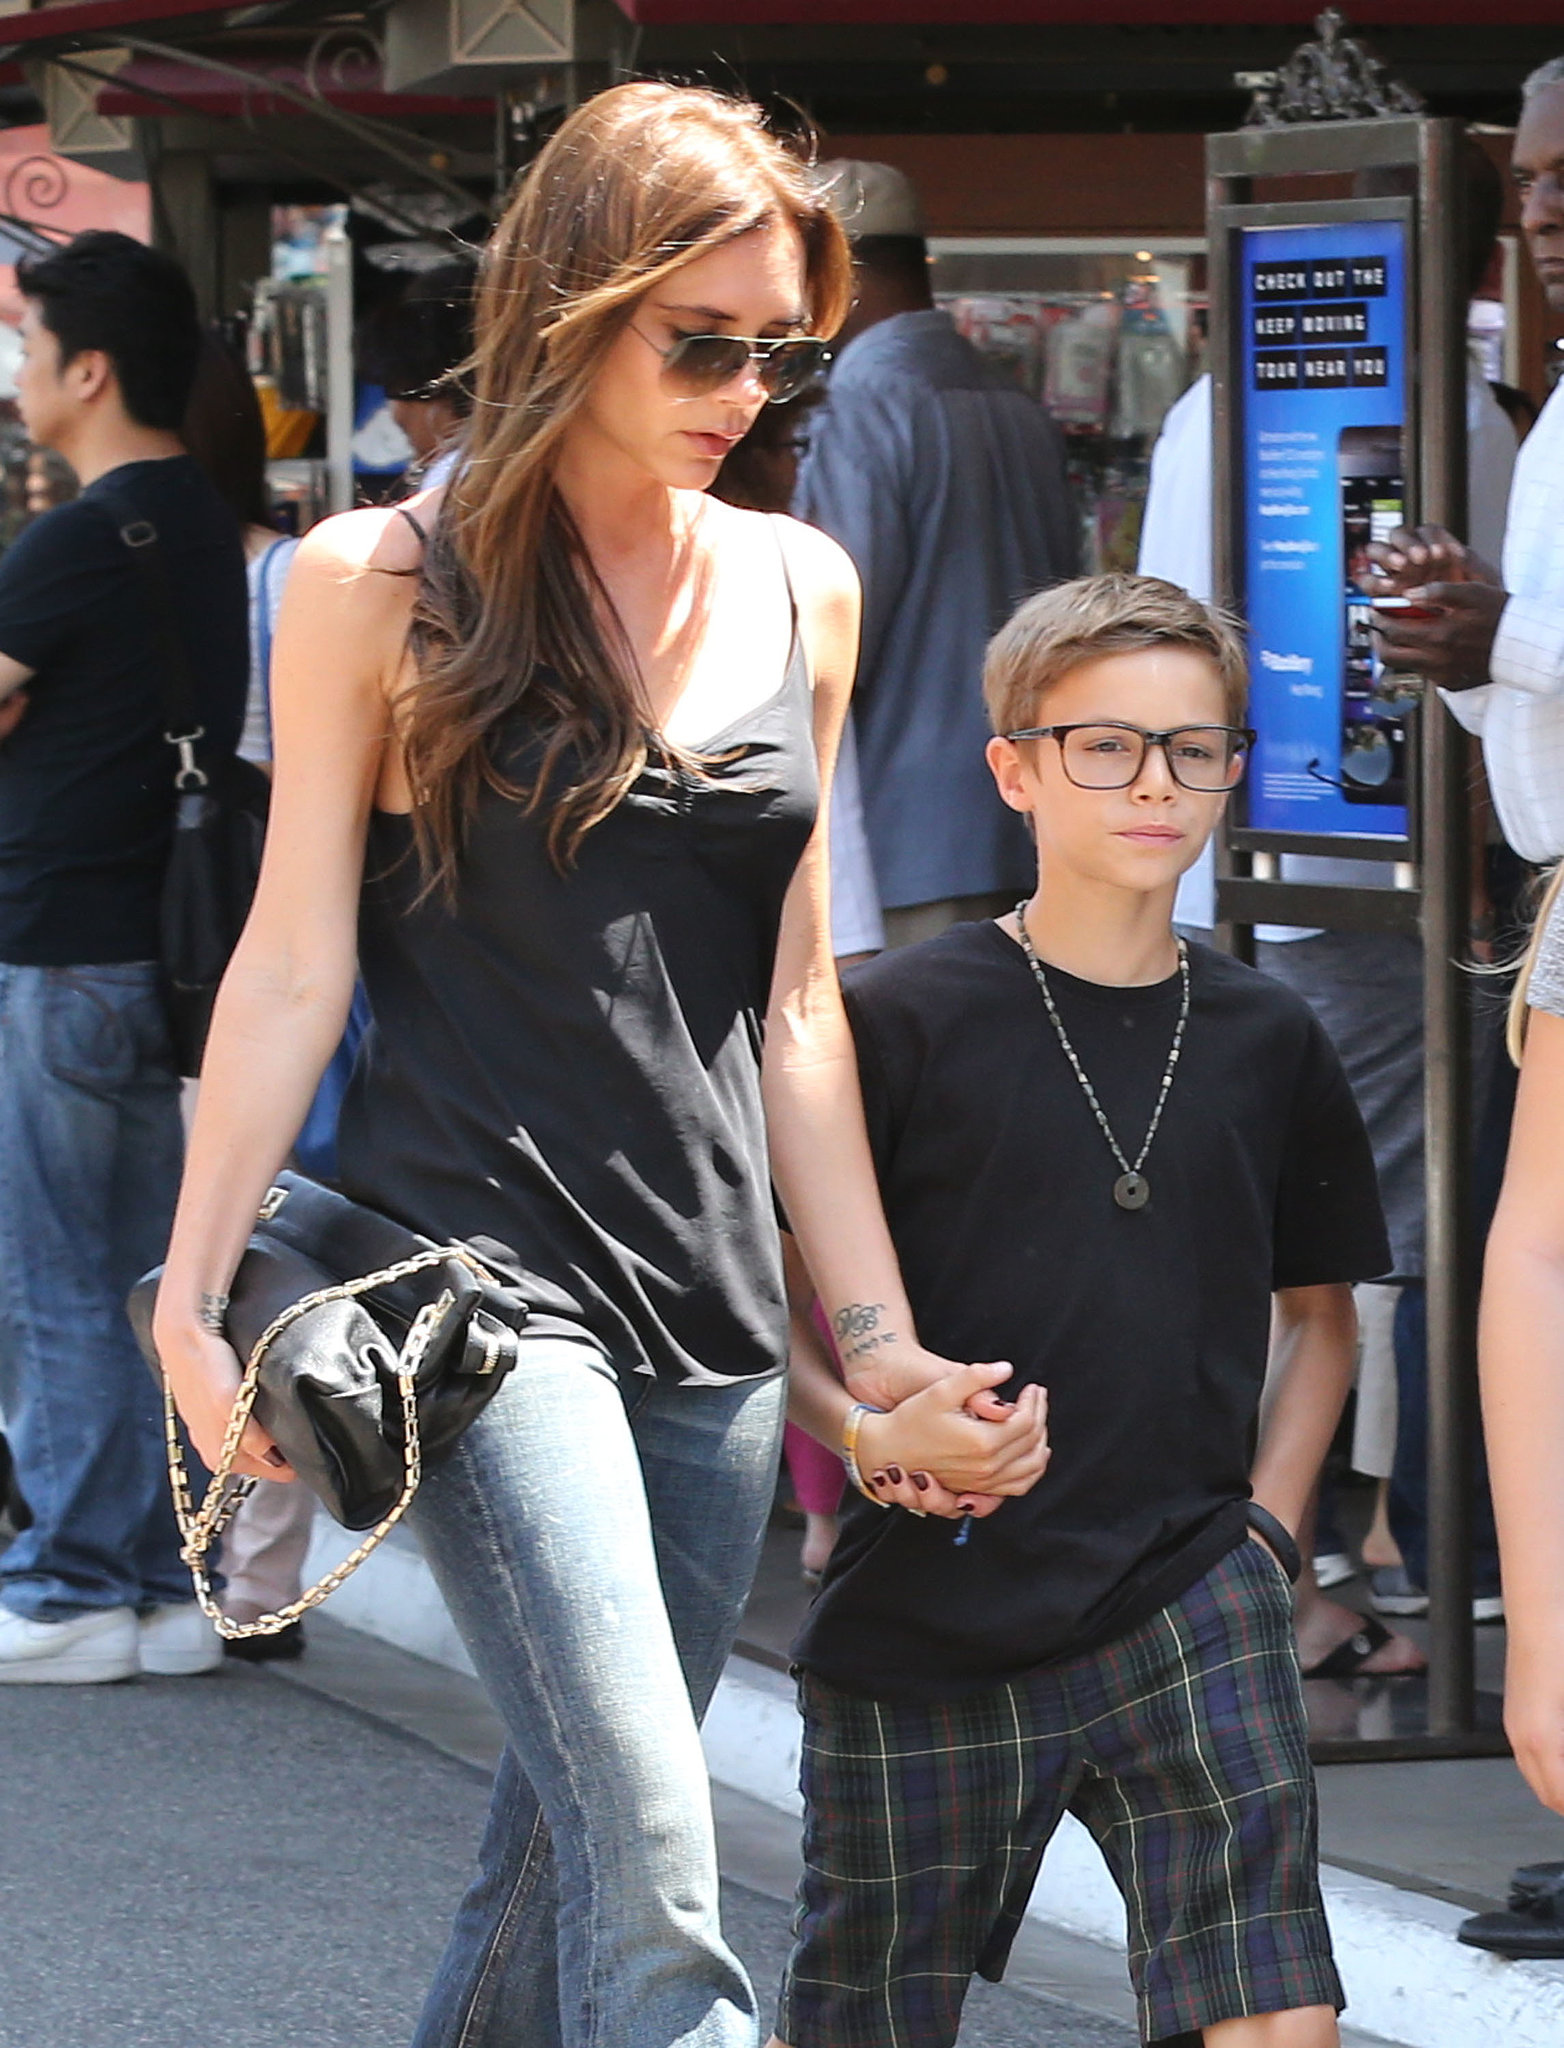 Victoria Beckham held on to Romeo while shopping in LA.